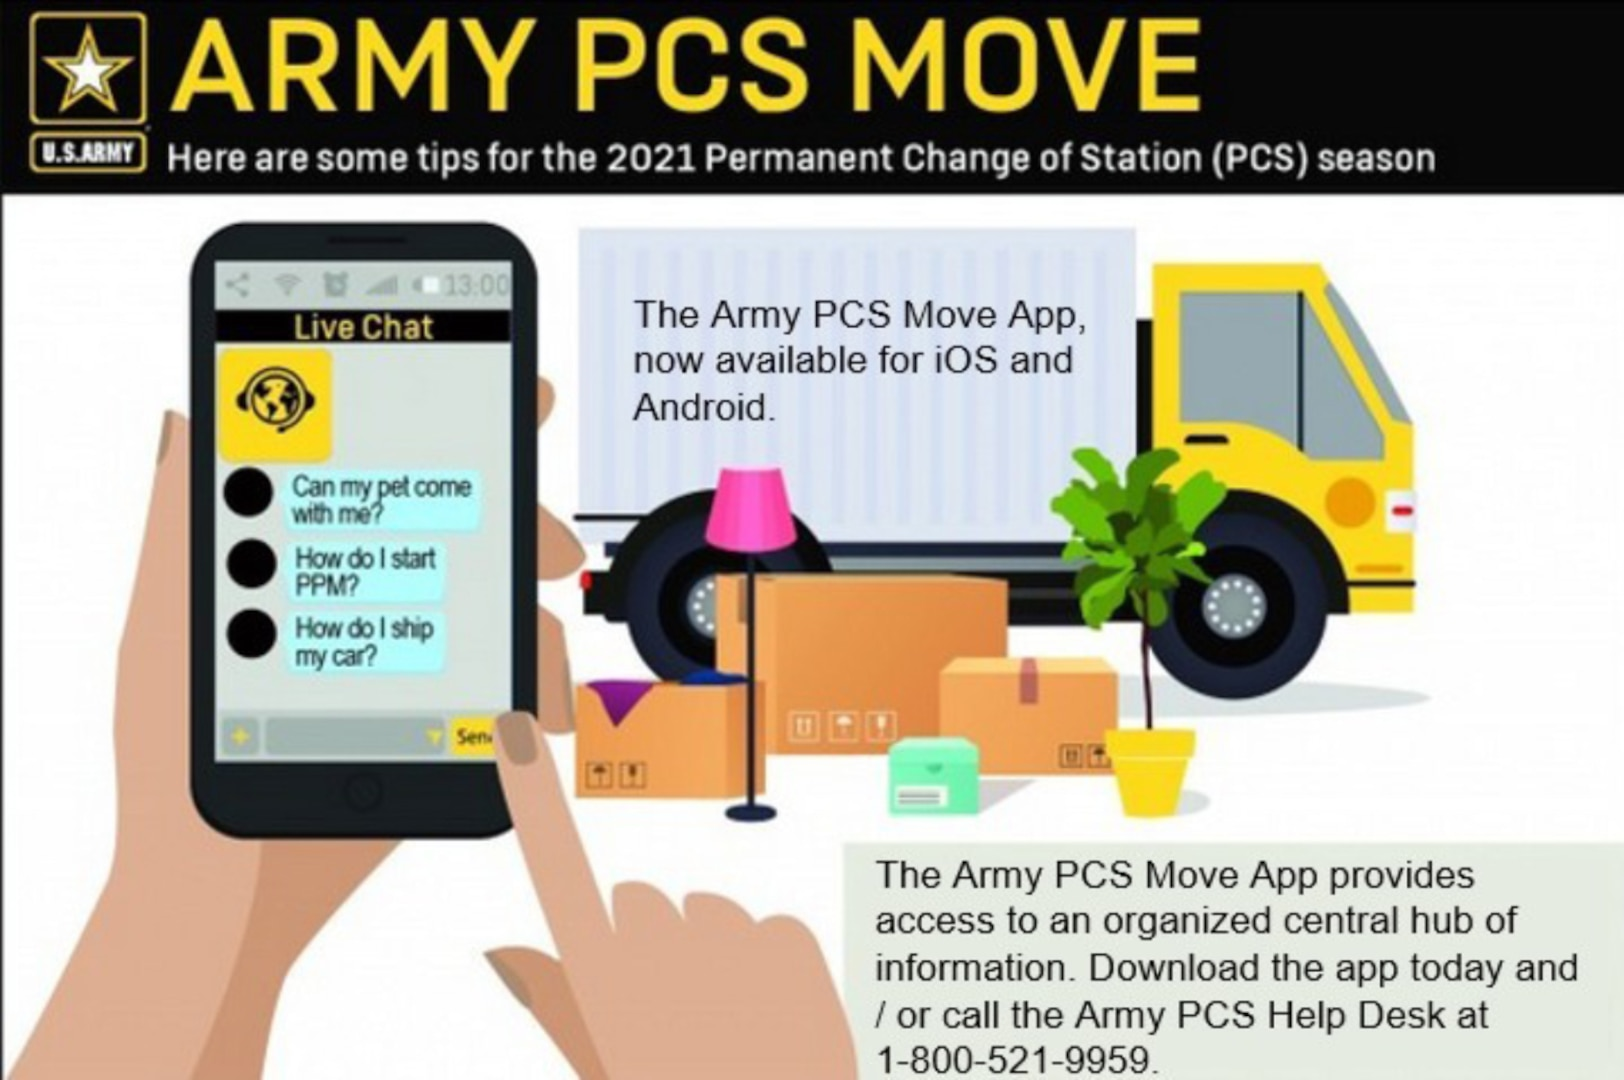 Soldiers and Families can download free apps to assist with the PCS process: Digital Garrison, Army PCS Move, and PCS My POV.